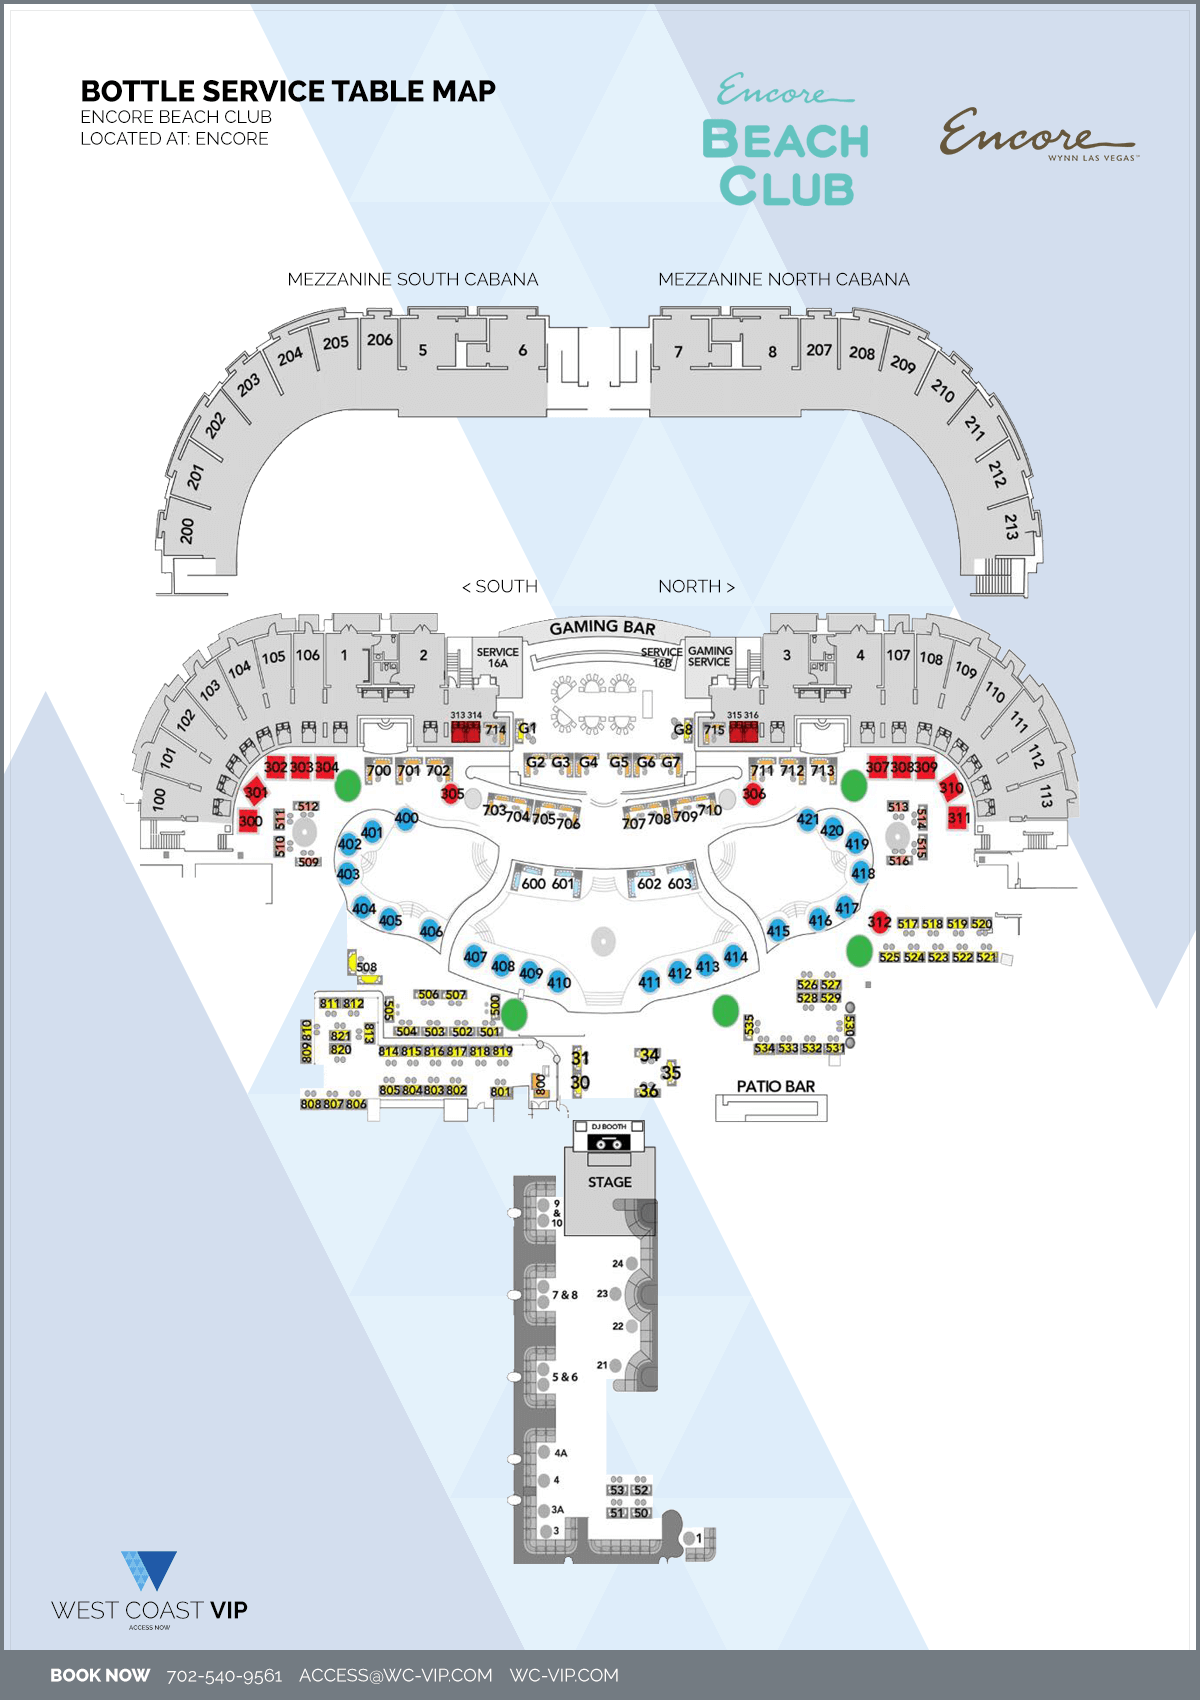 Encore Beach Club Las Vegas Bottle Service Table Map